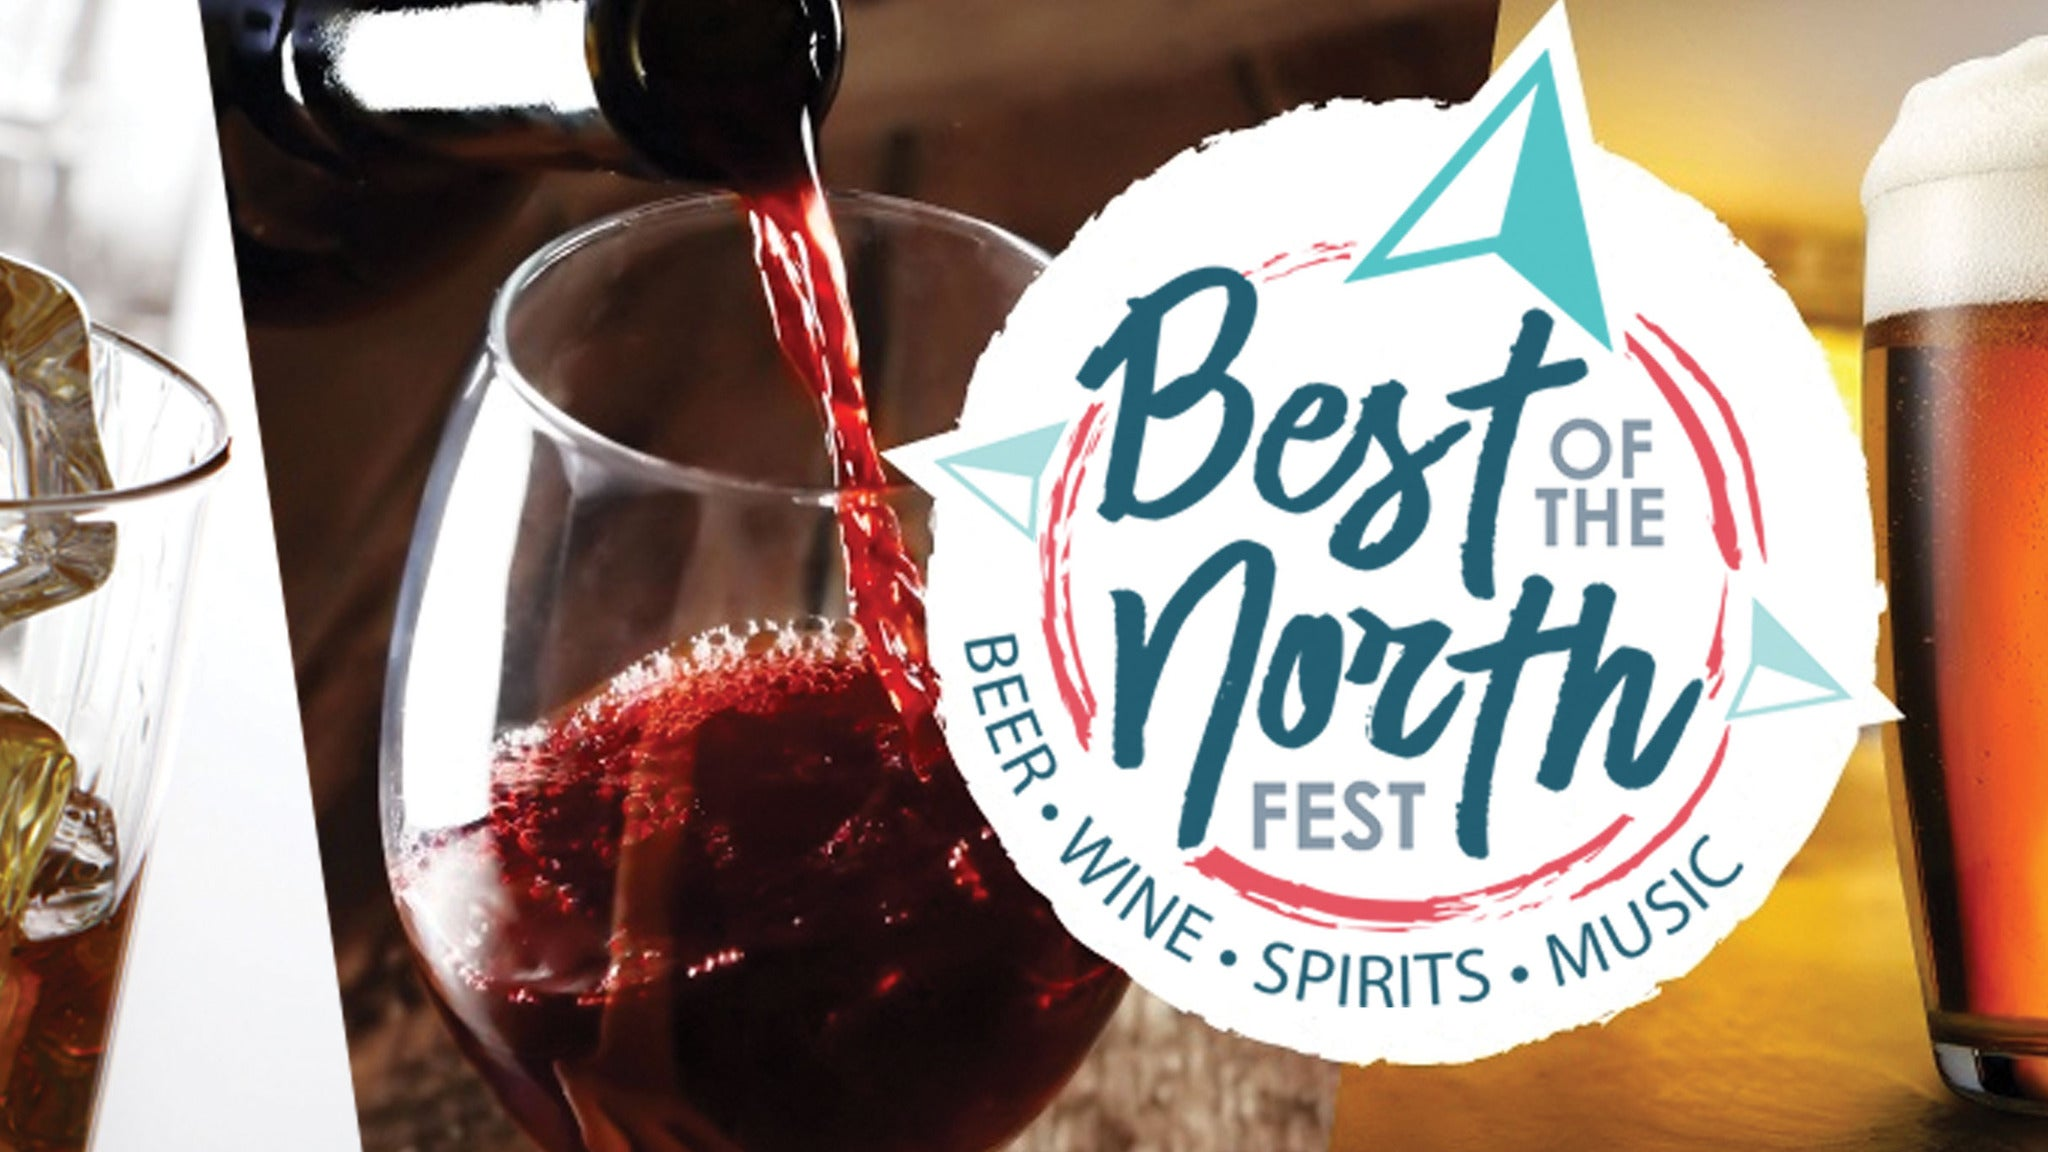 Best of the North Fest: Beer, Wine, Spirits & Music